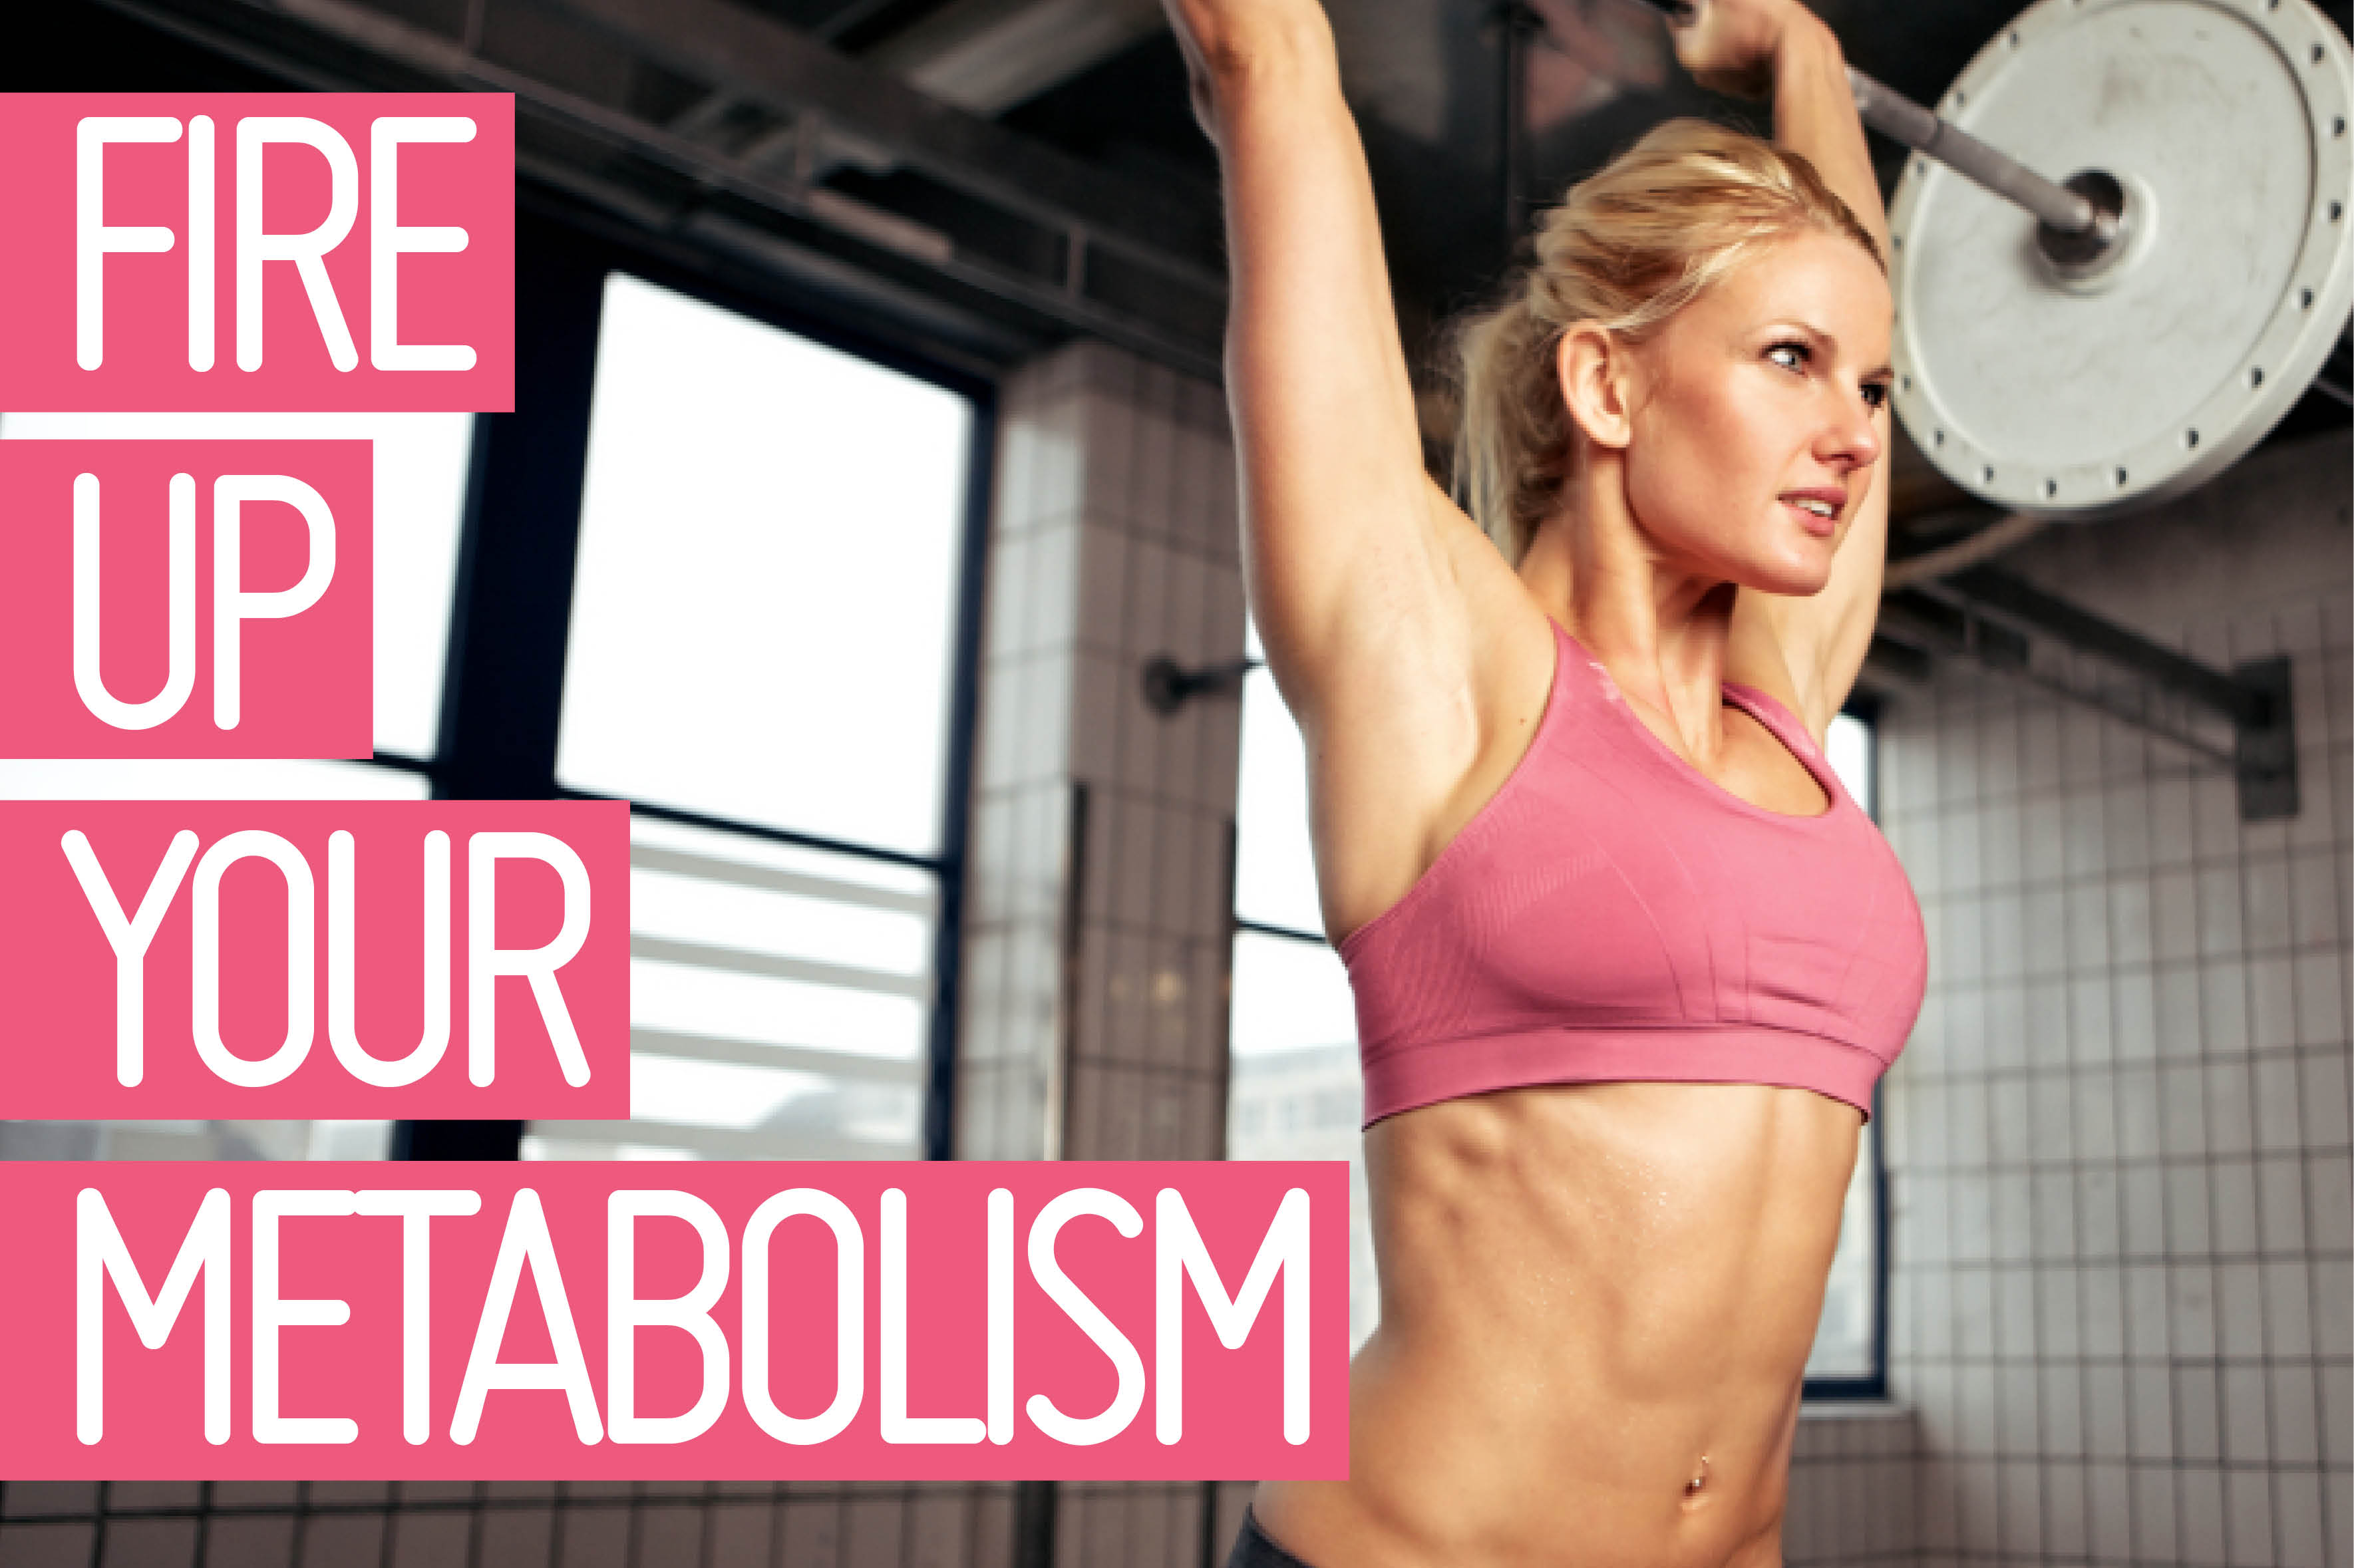 Tips for firing up your metabolism